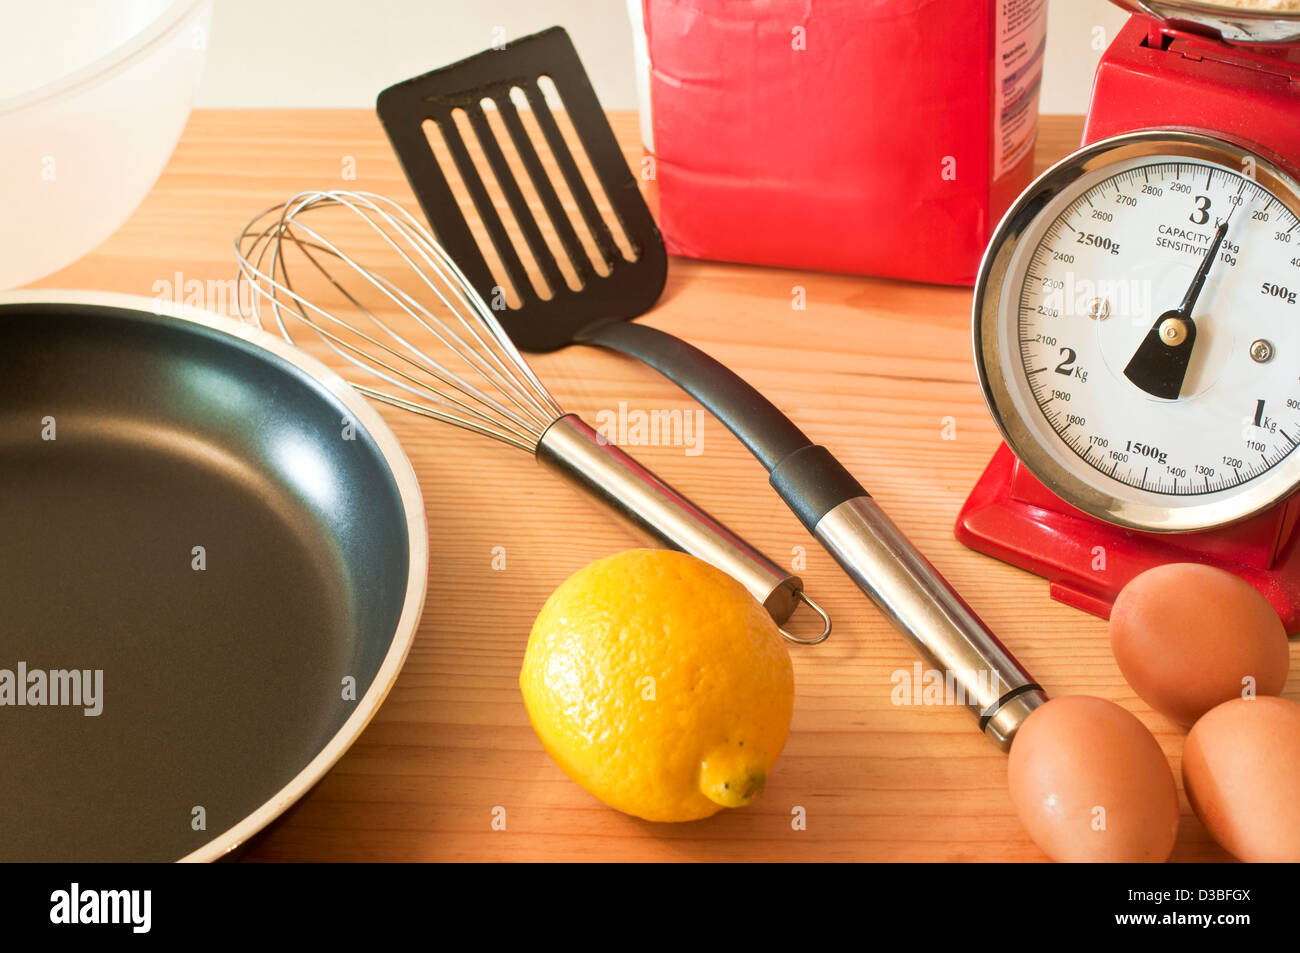 Kitchen scales and baking utensils - Stock Image